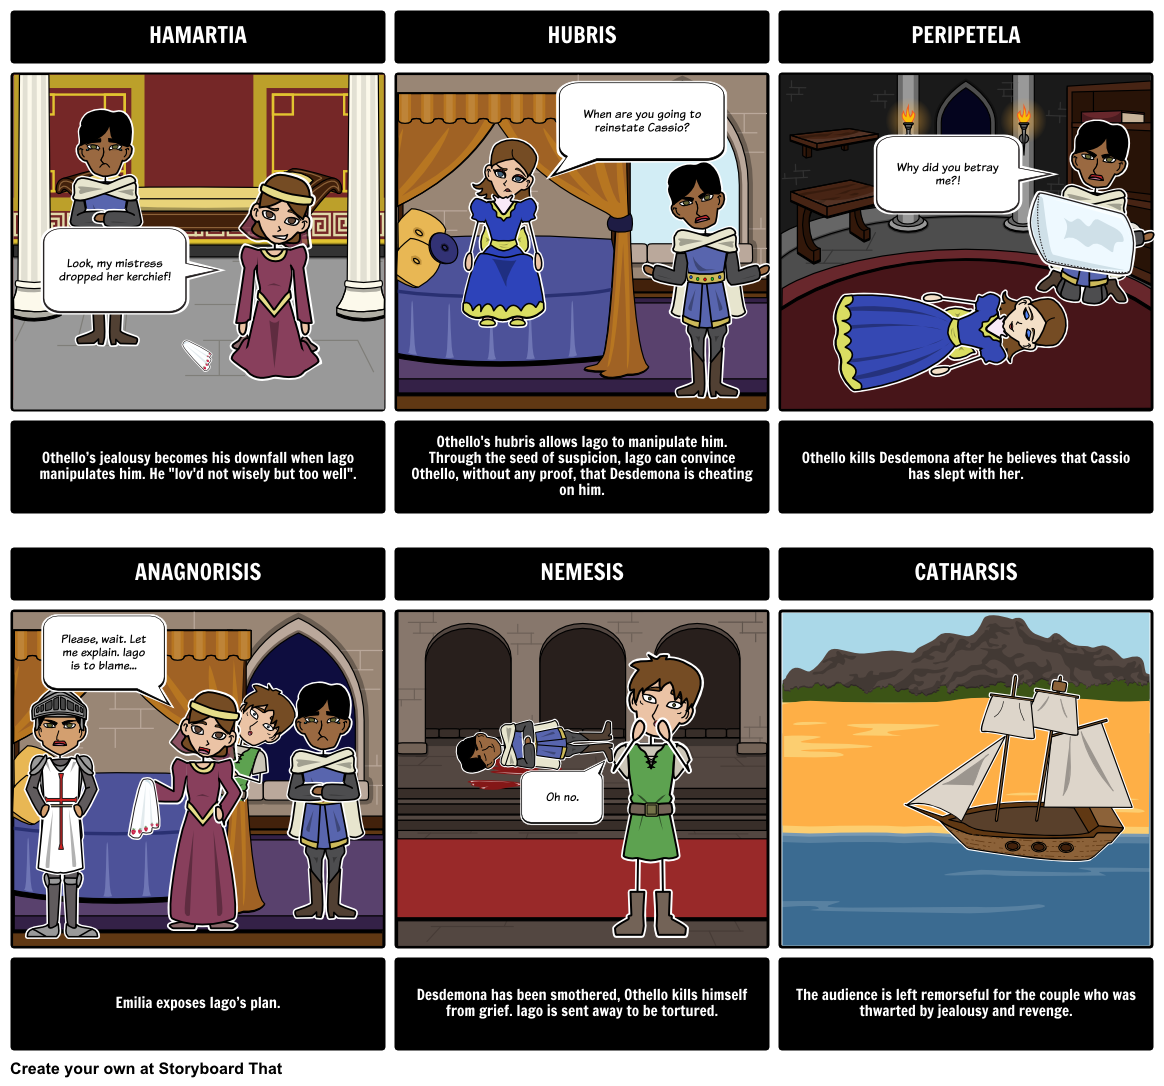 006 How is Othello the Tragic Hero? Portray your ideas in a